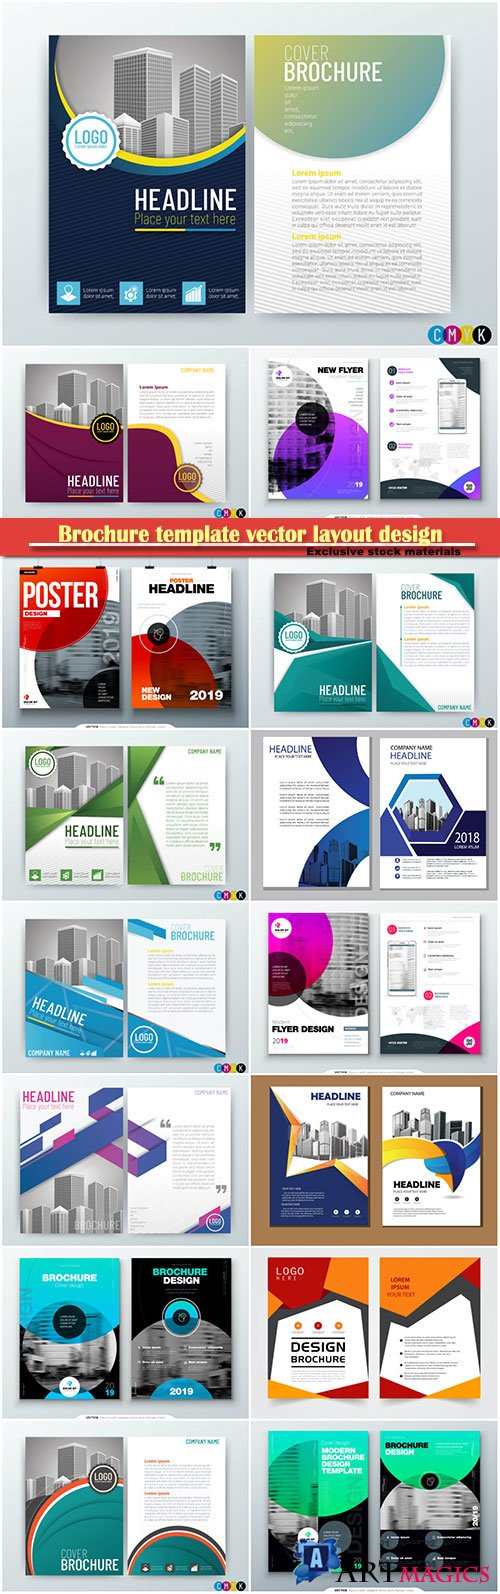 Brochure template vector layout design, corporate business annual report, magazine, flyer mockup # 167